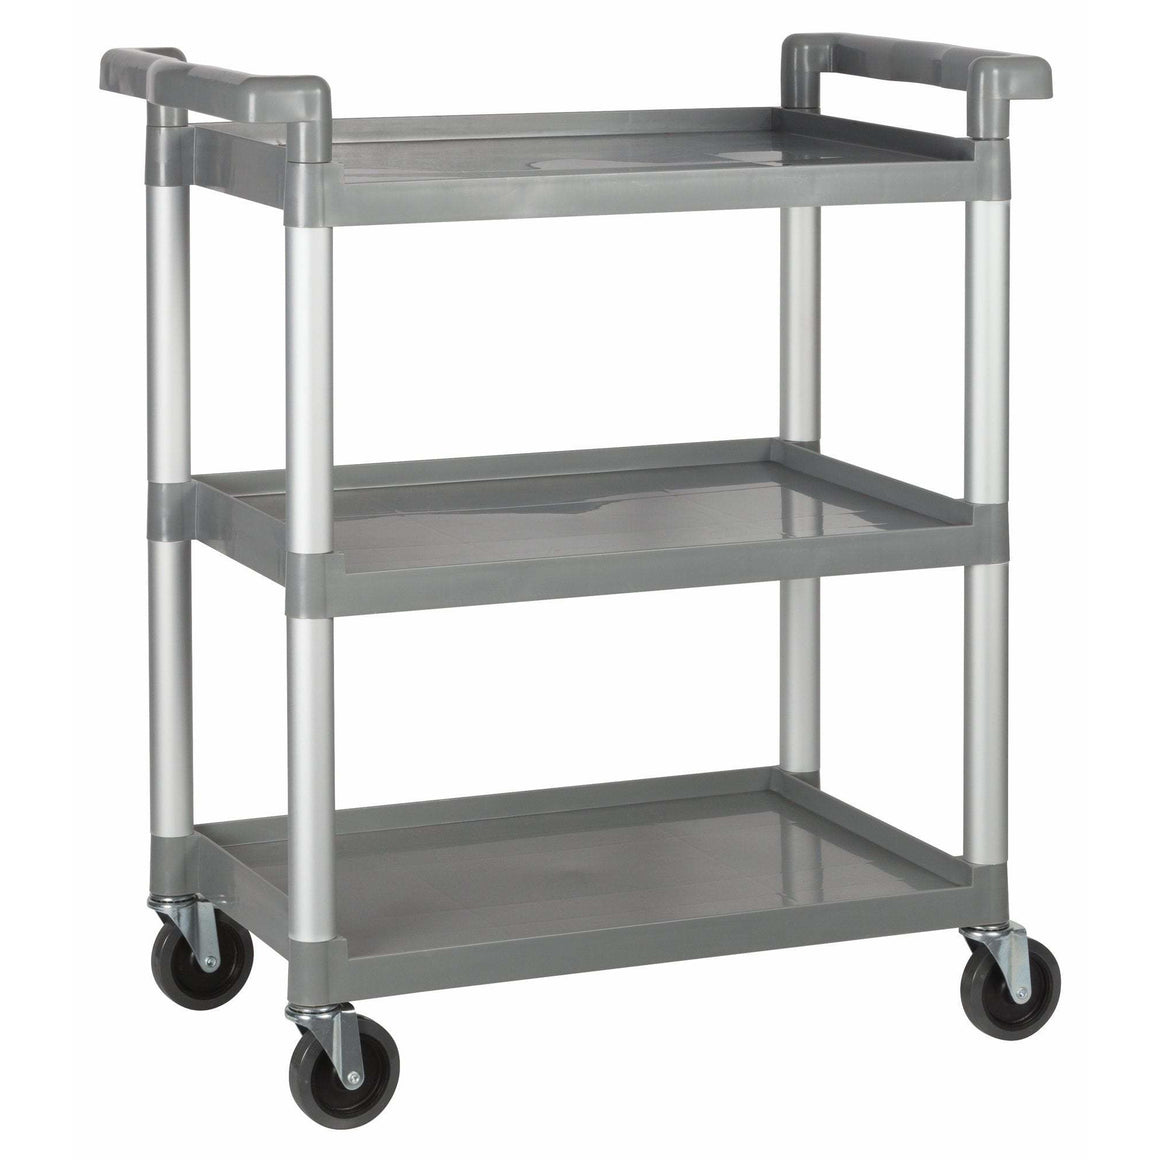 "Winco - UC-2415G - Plastic Utility Cart, 32""L x 16-1/8""W x 36-3/4""H, 3 Tier, Gray - Bussing"